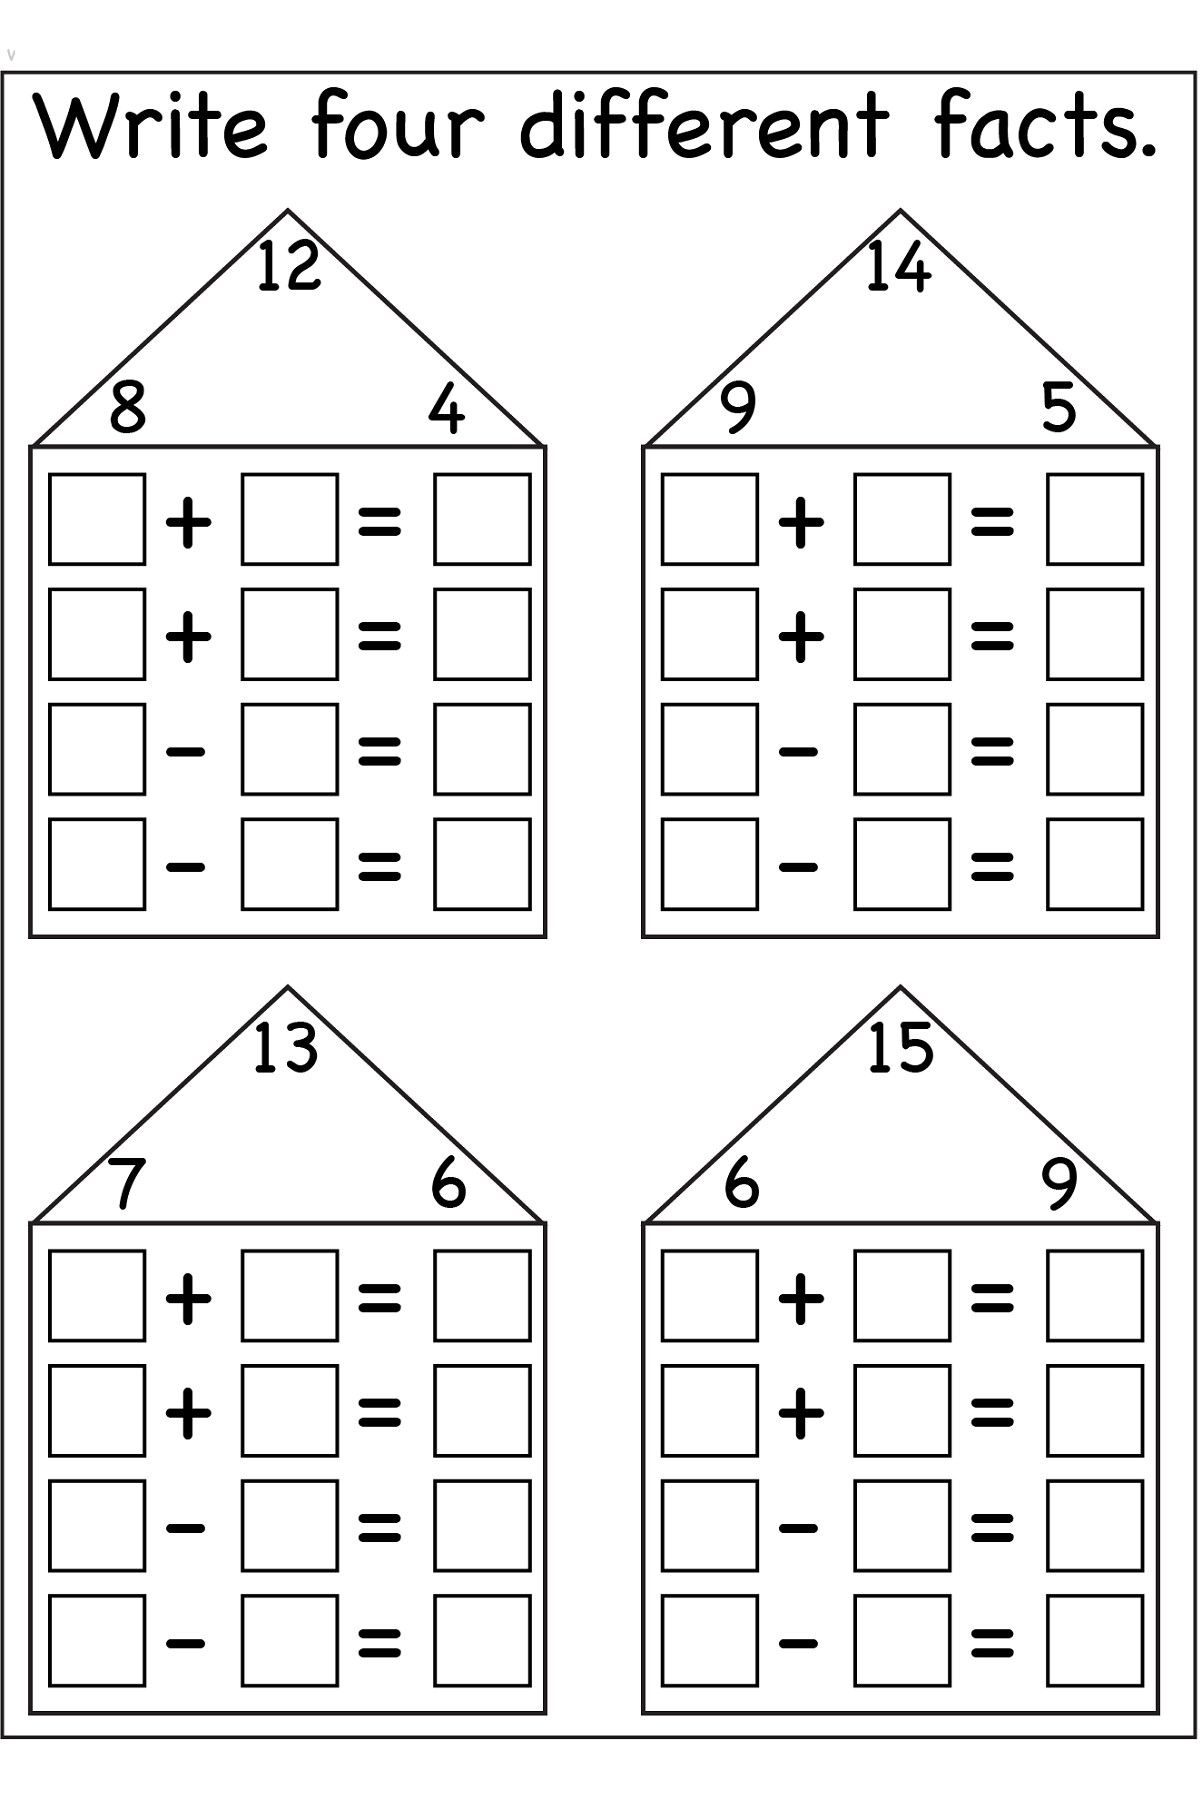 5 Family Facts Worksheets Blank In